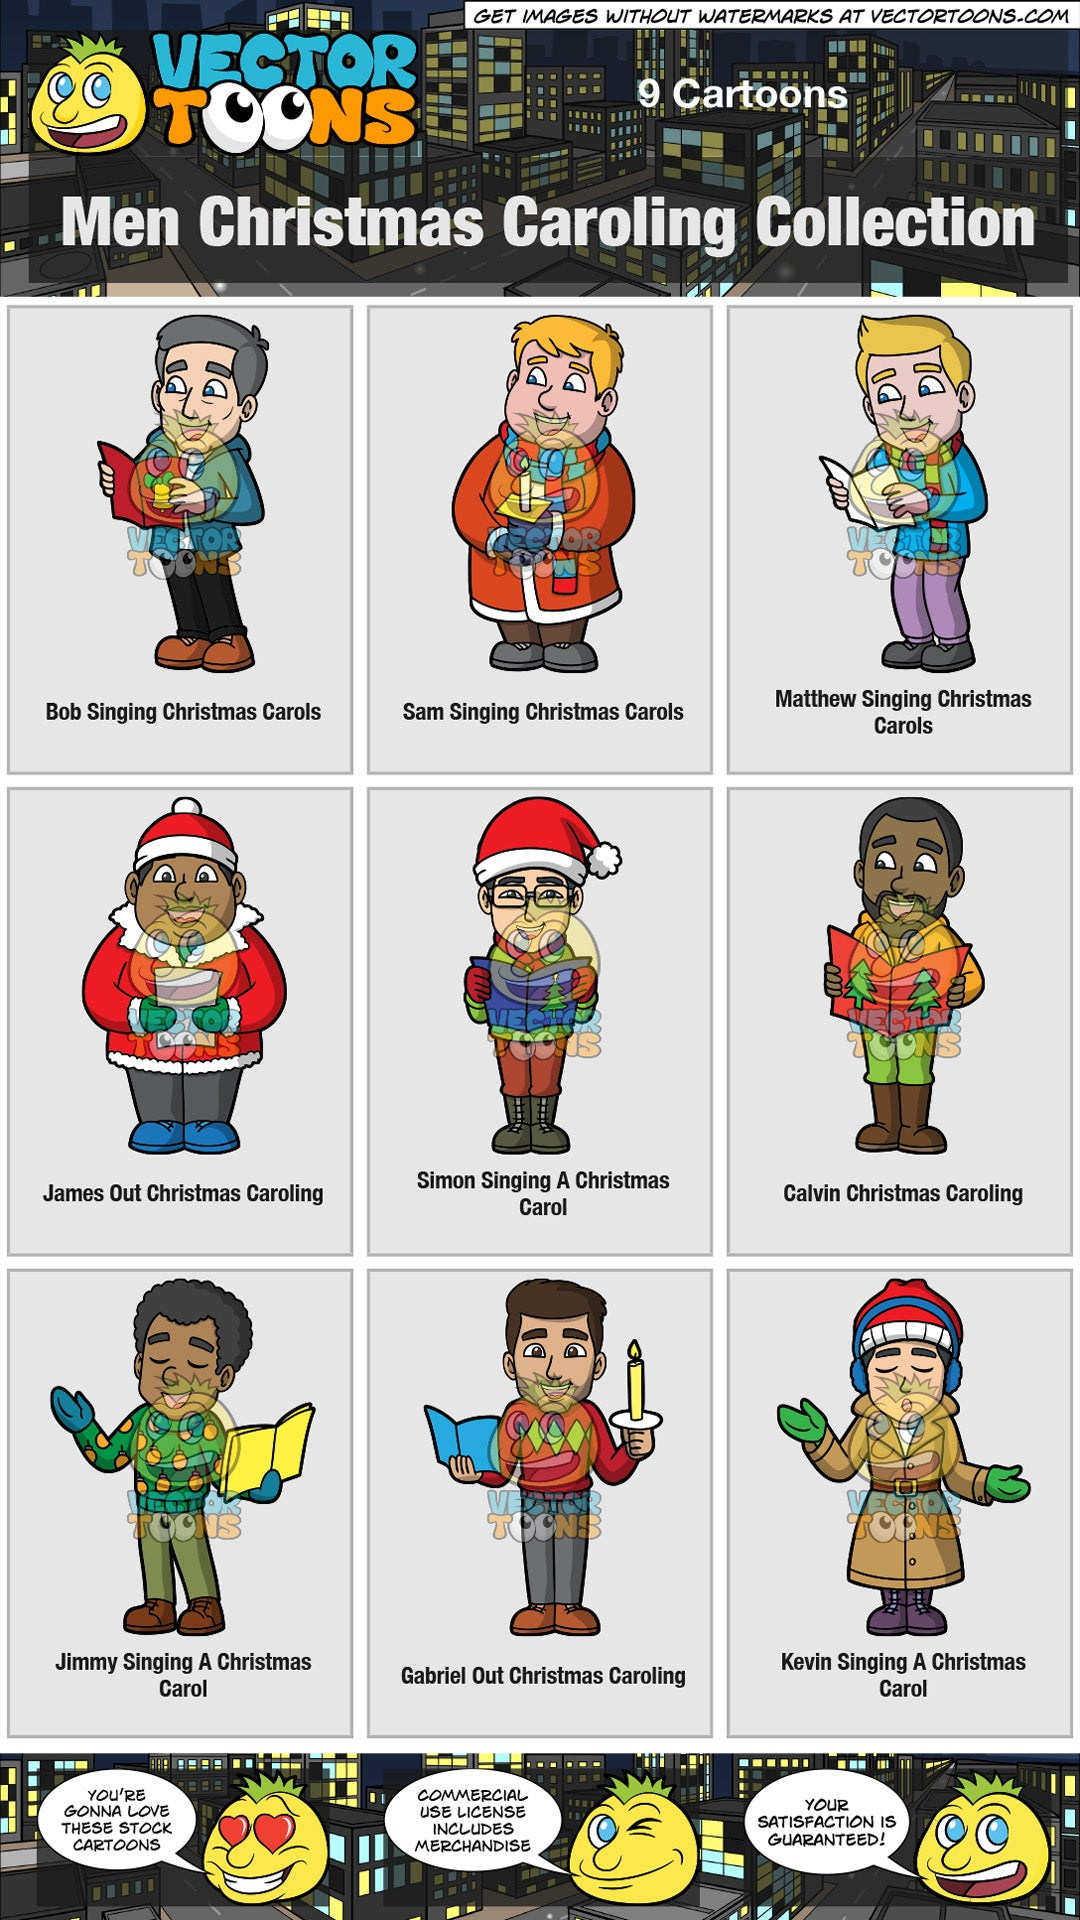 Men Christmas Caroling Collection